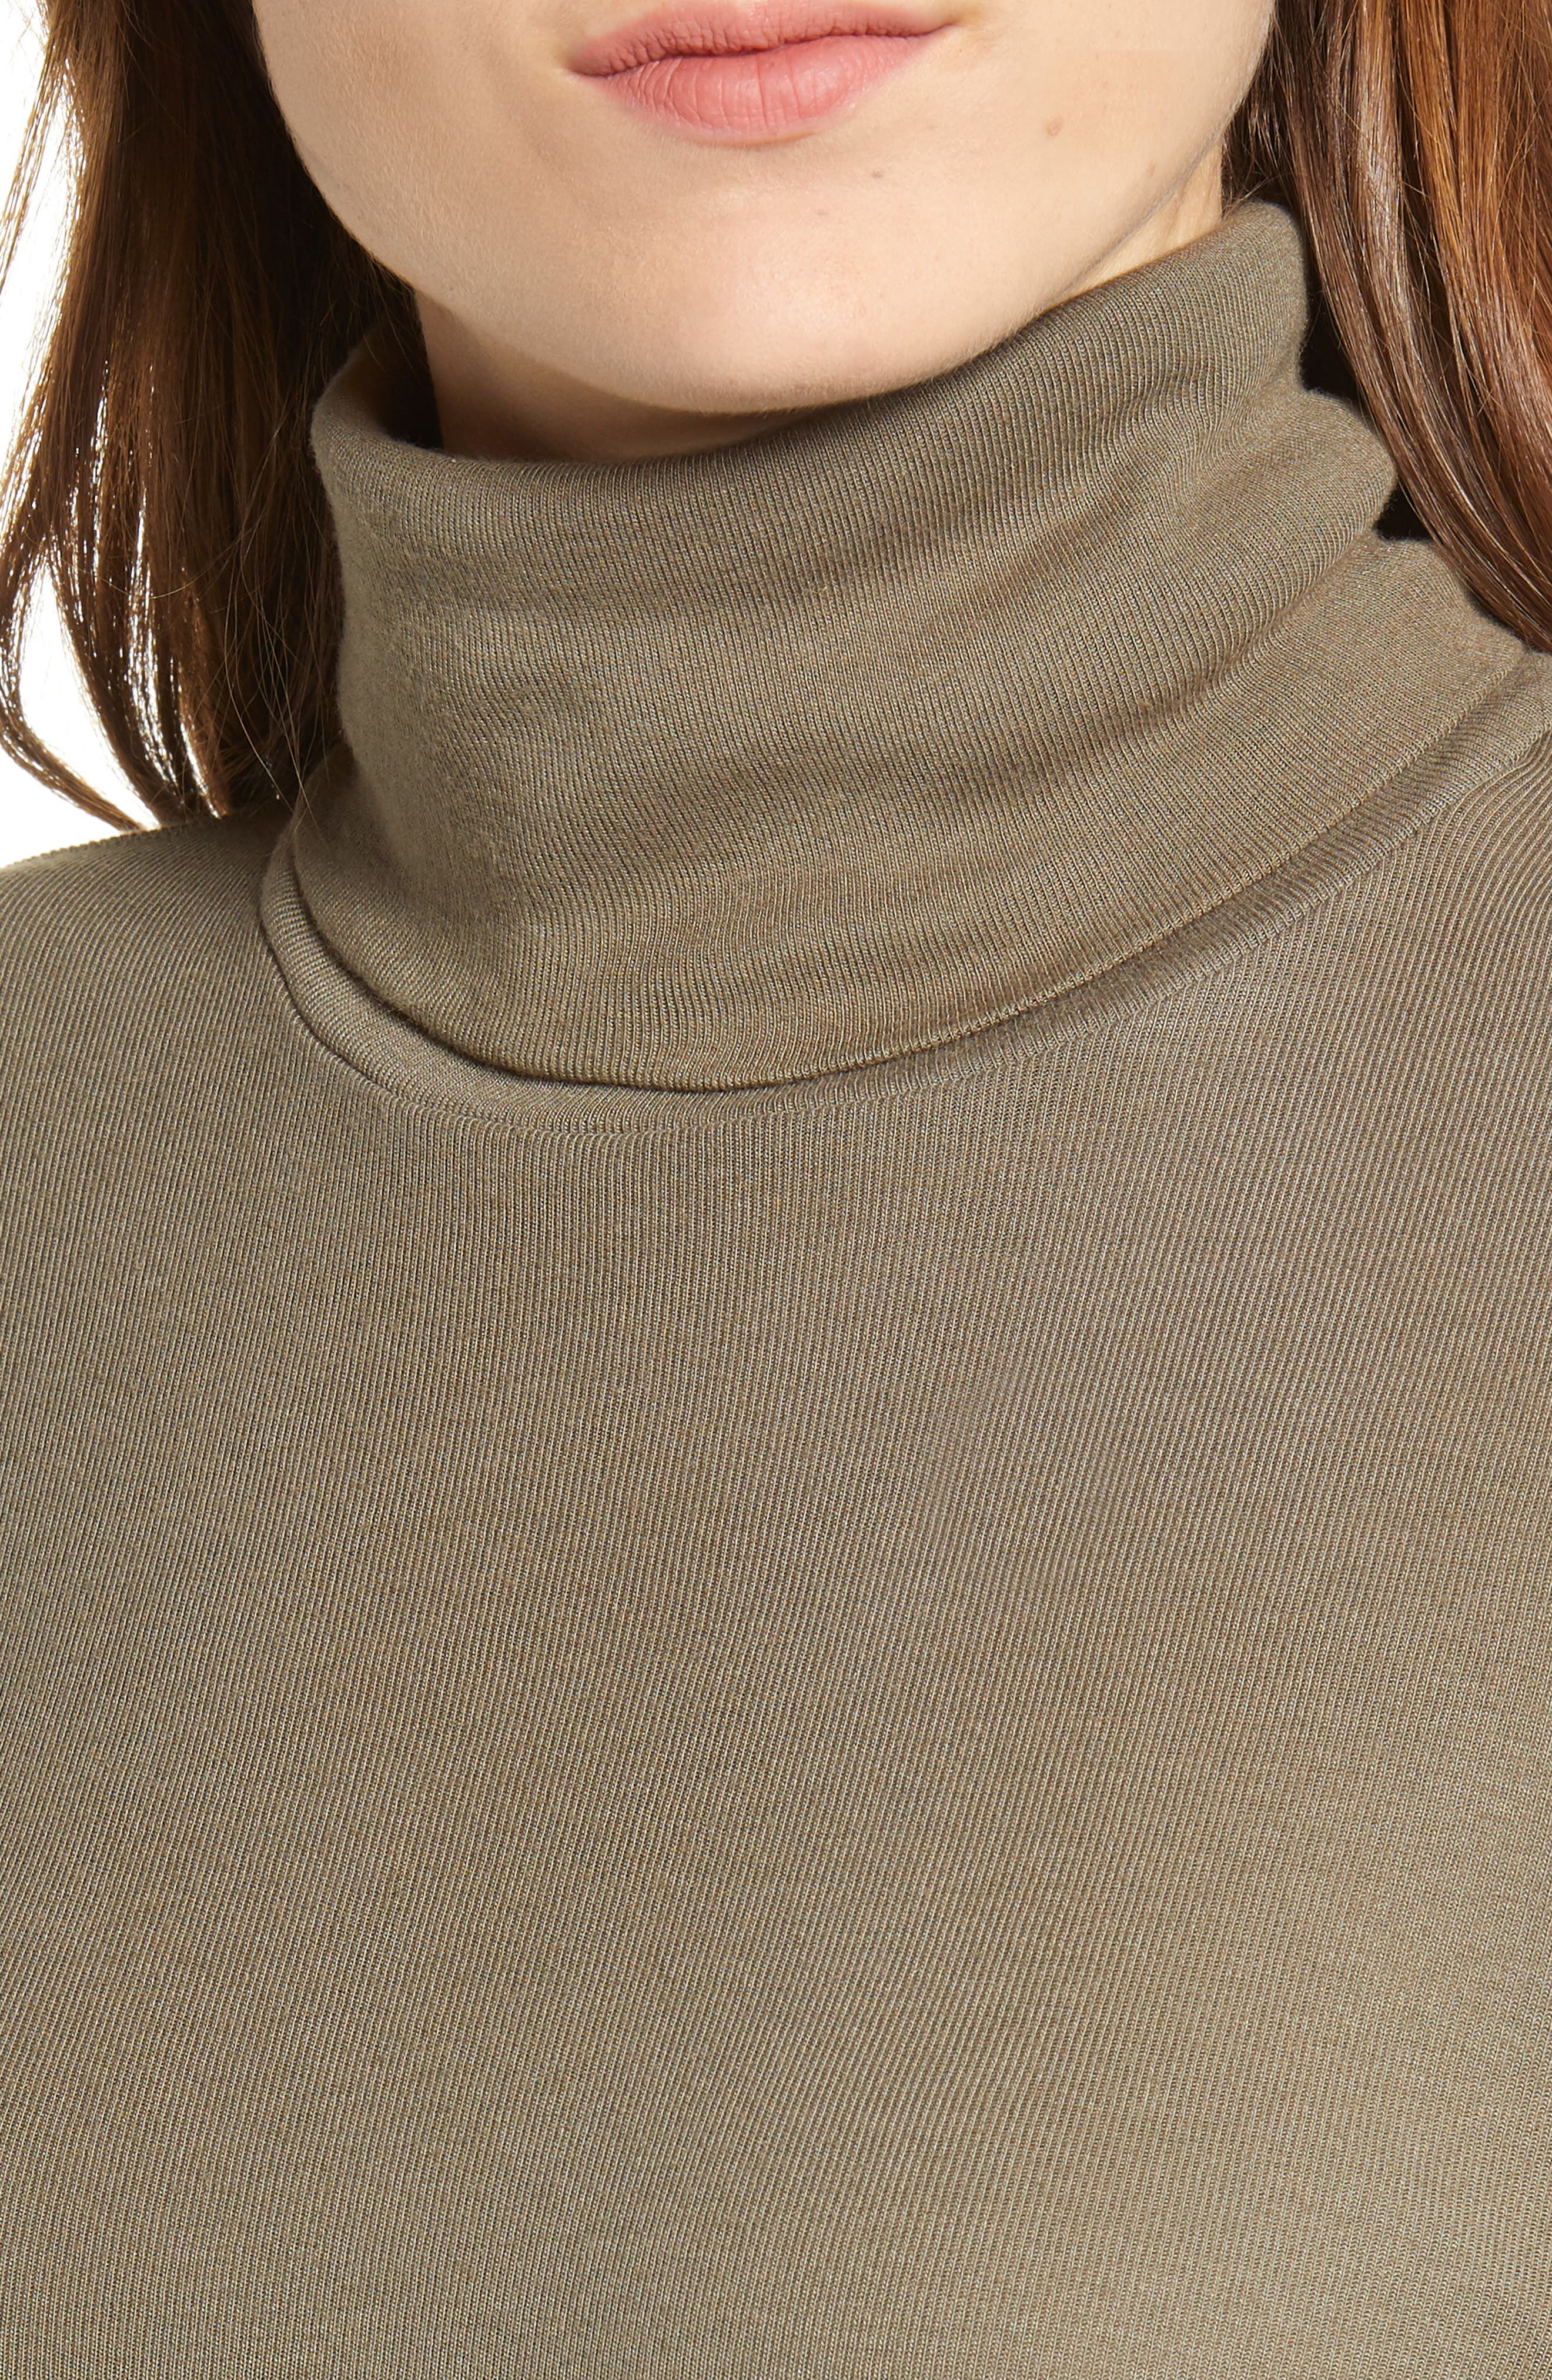 SPLENDID,                             Fitted Turtleneck,                             Alternate thumbnail 4, color,                             309